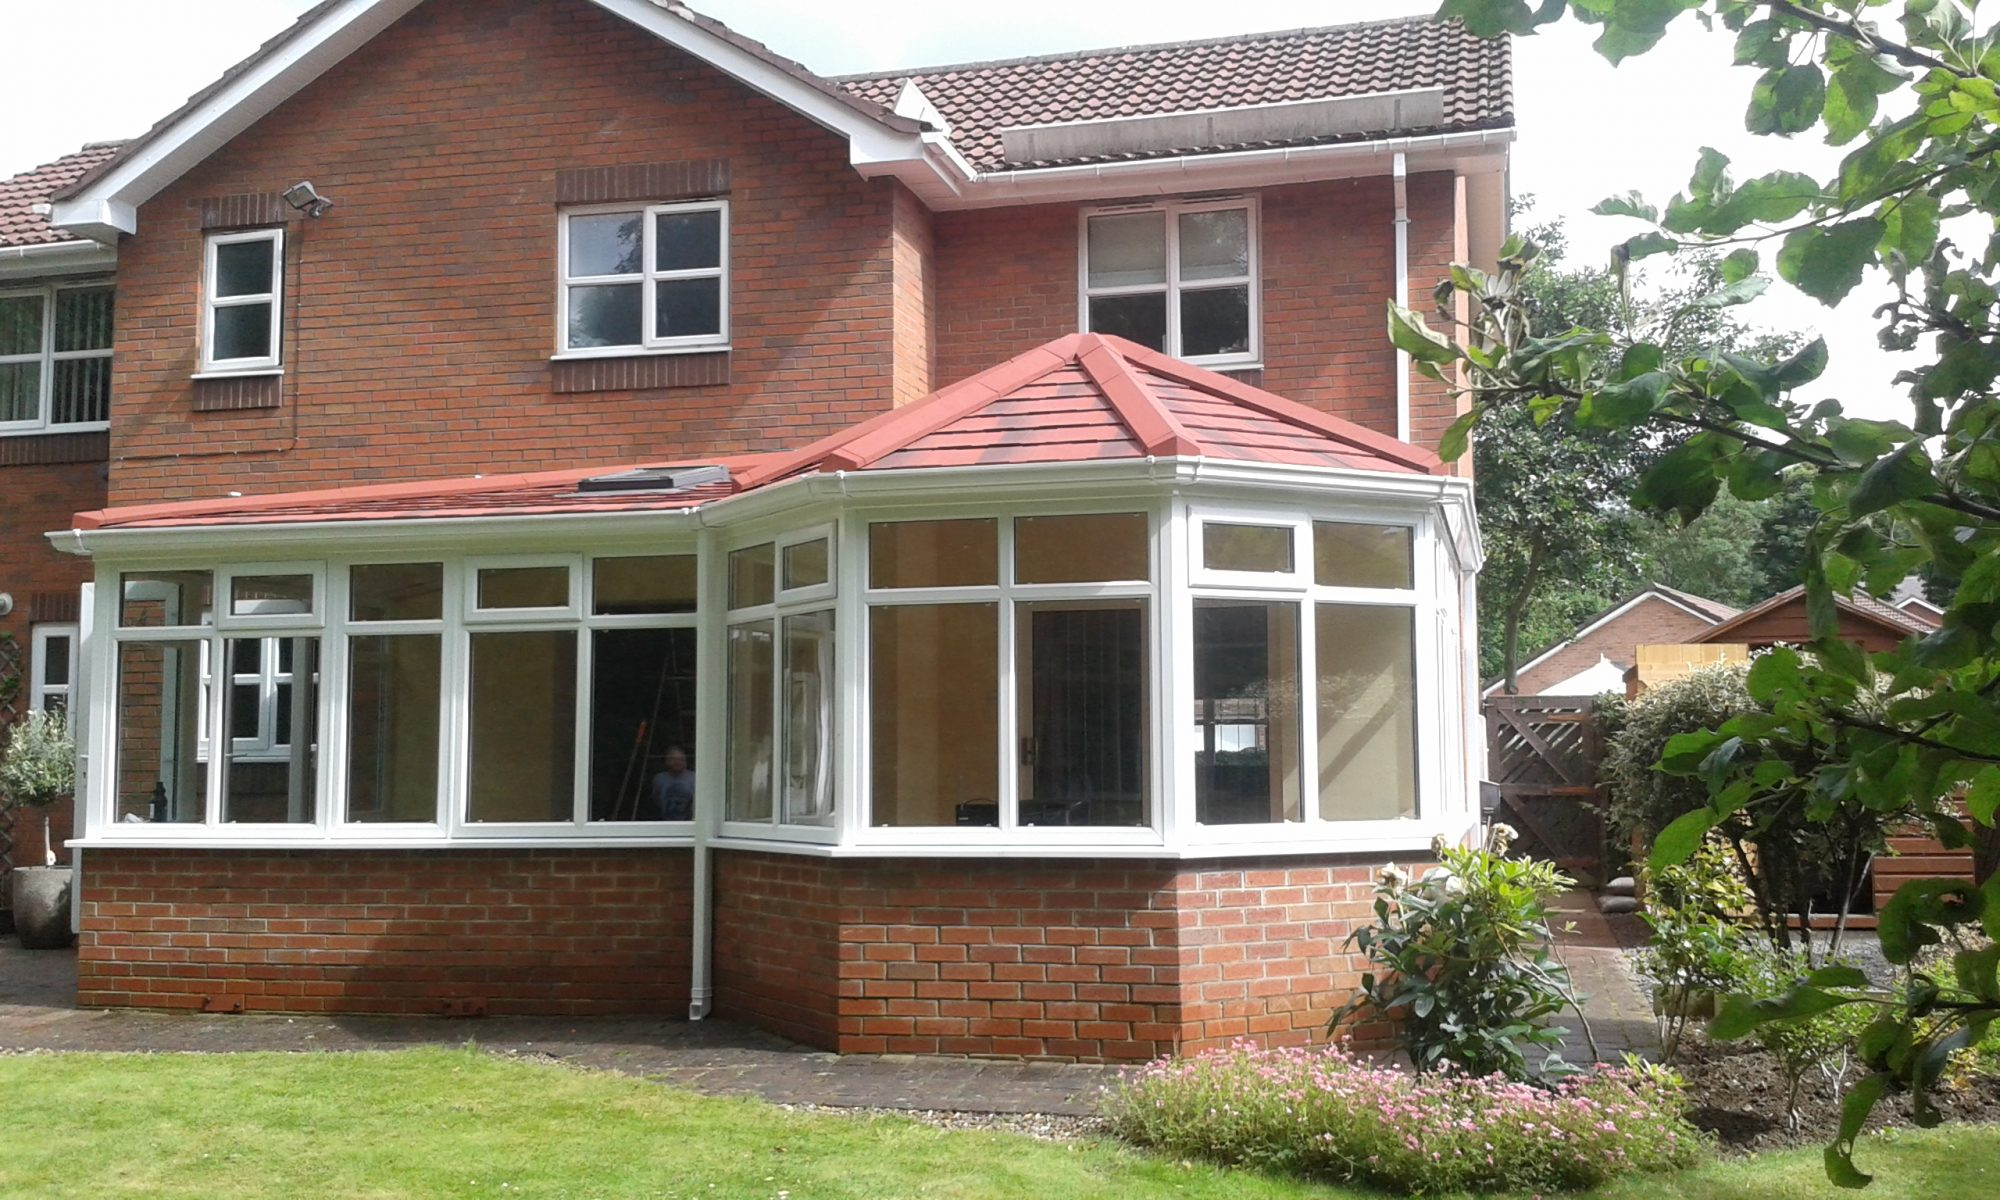 Conservatory Roof Conversion Guardian Warm Roof Premier Roof Systems